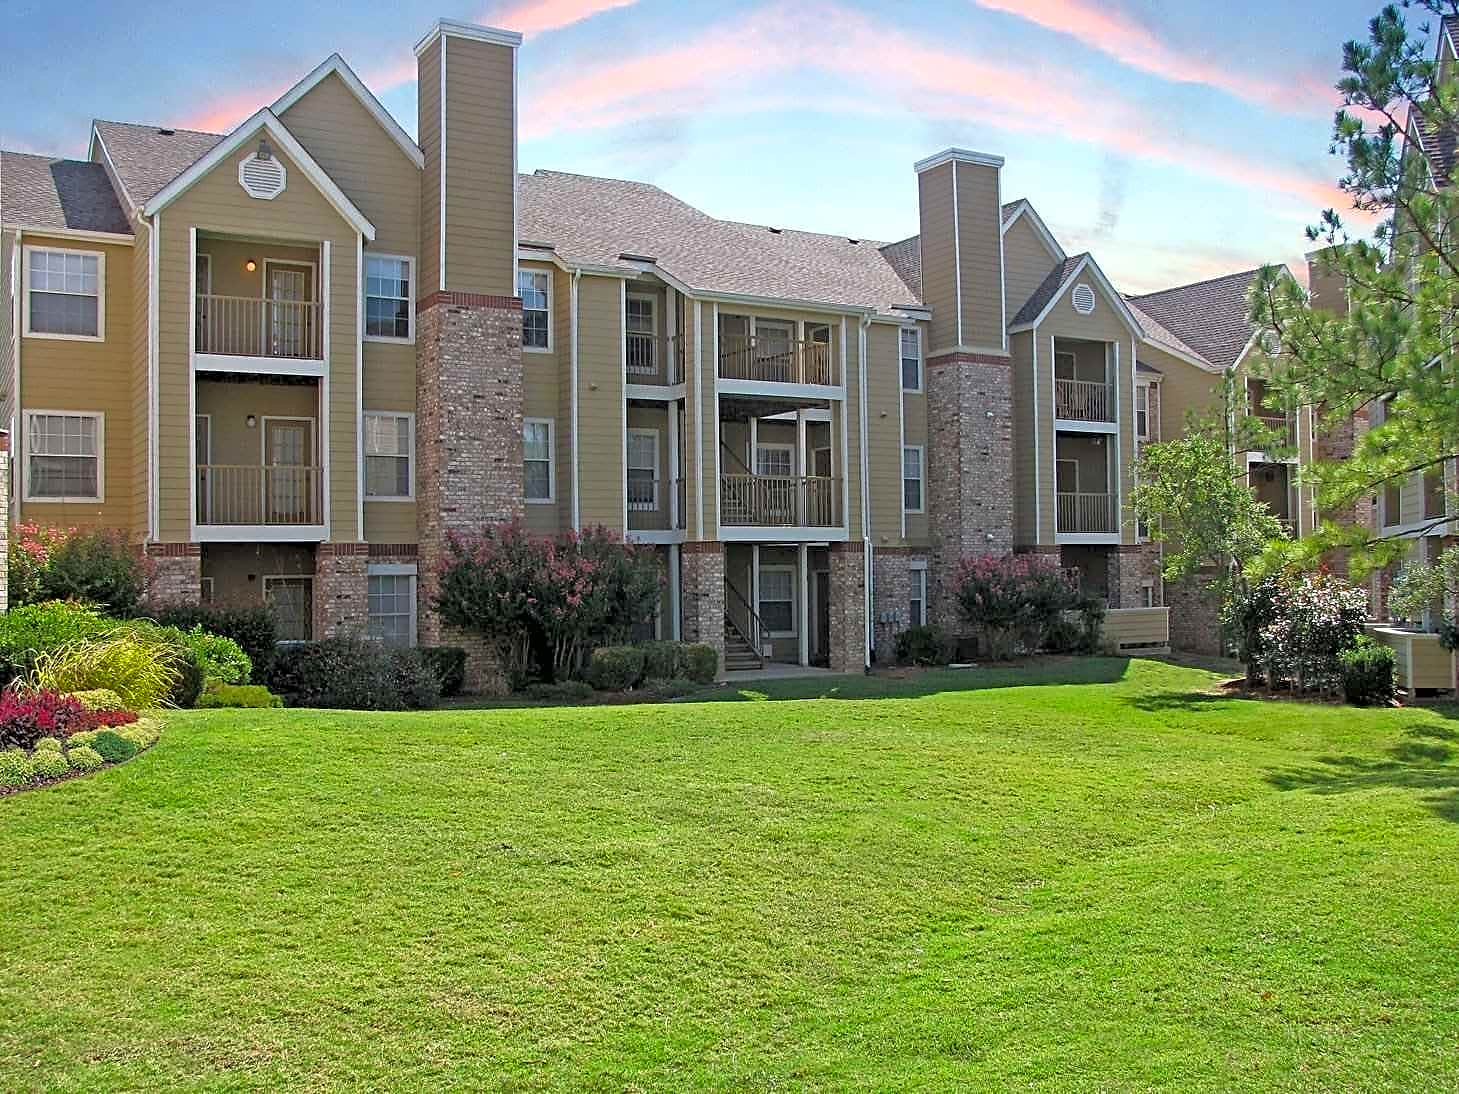 Photo: Tulsa Apartment for Rent - $675.00 / month; 1 Bd & 1 Ba